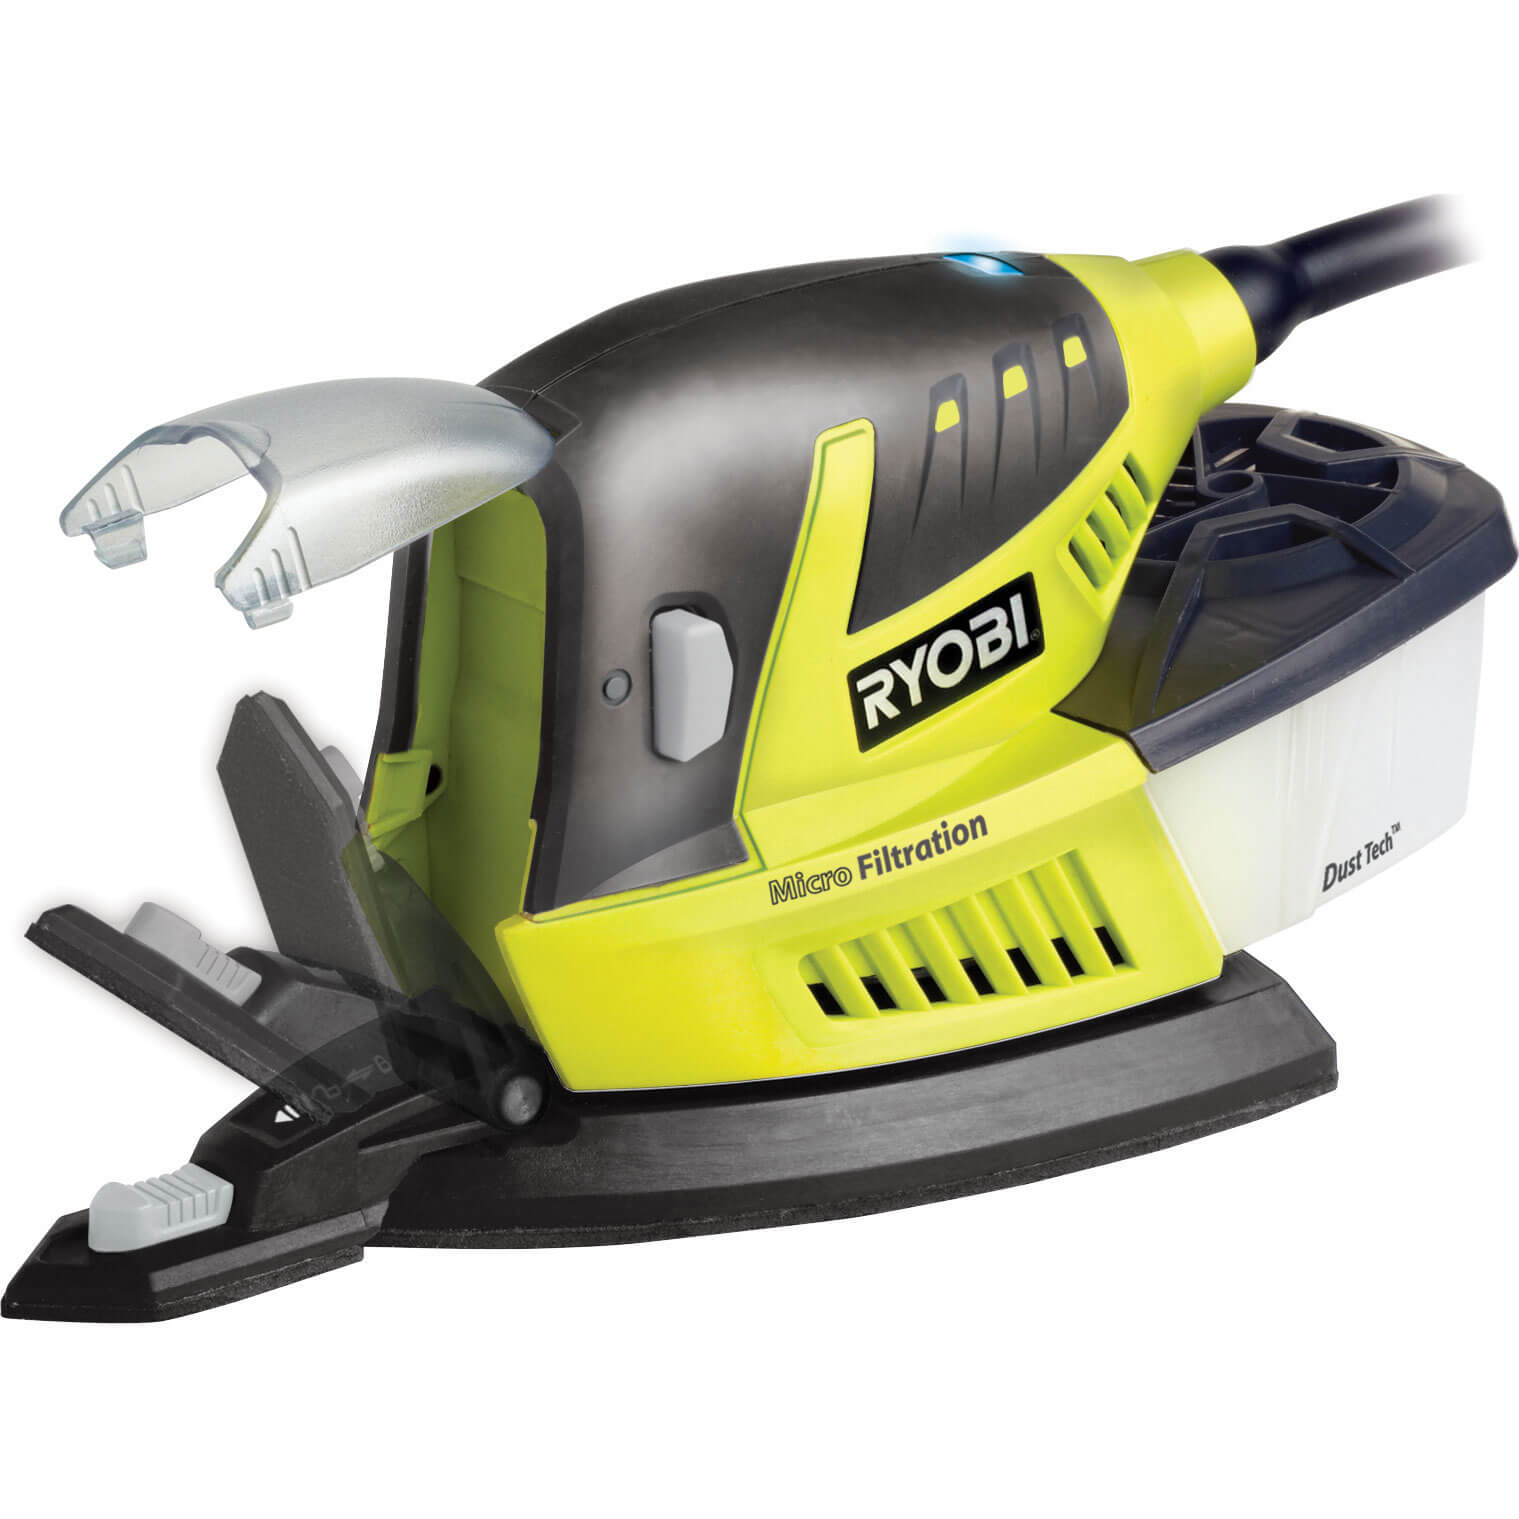 Die Electric Sander ~ Buy cheap ryobi sander compare power tools prices for